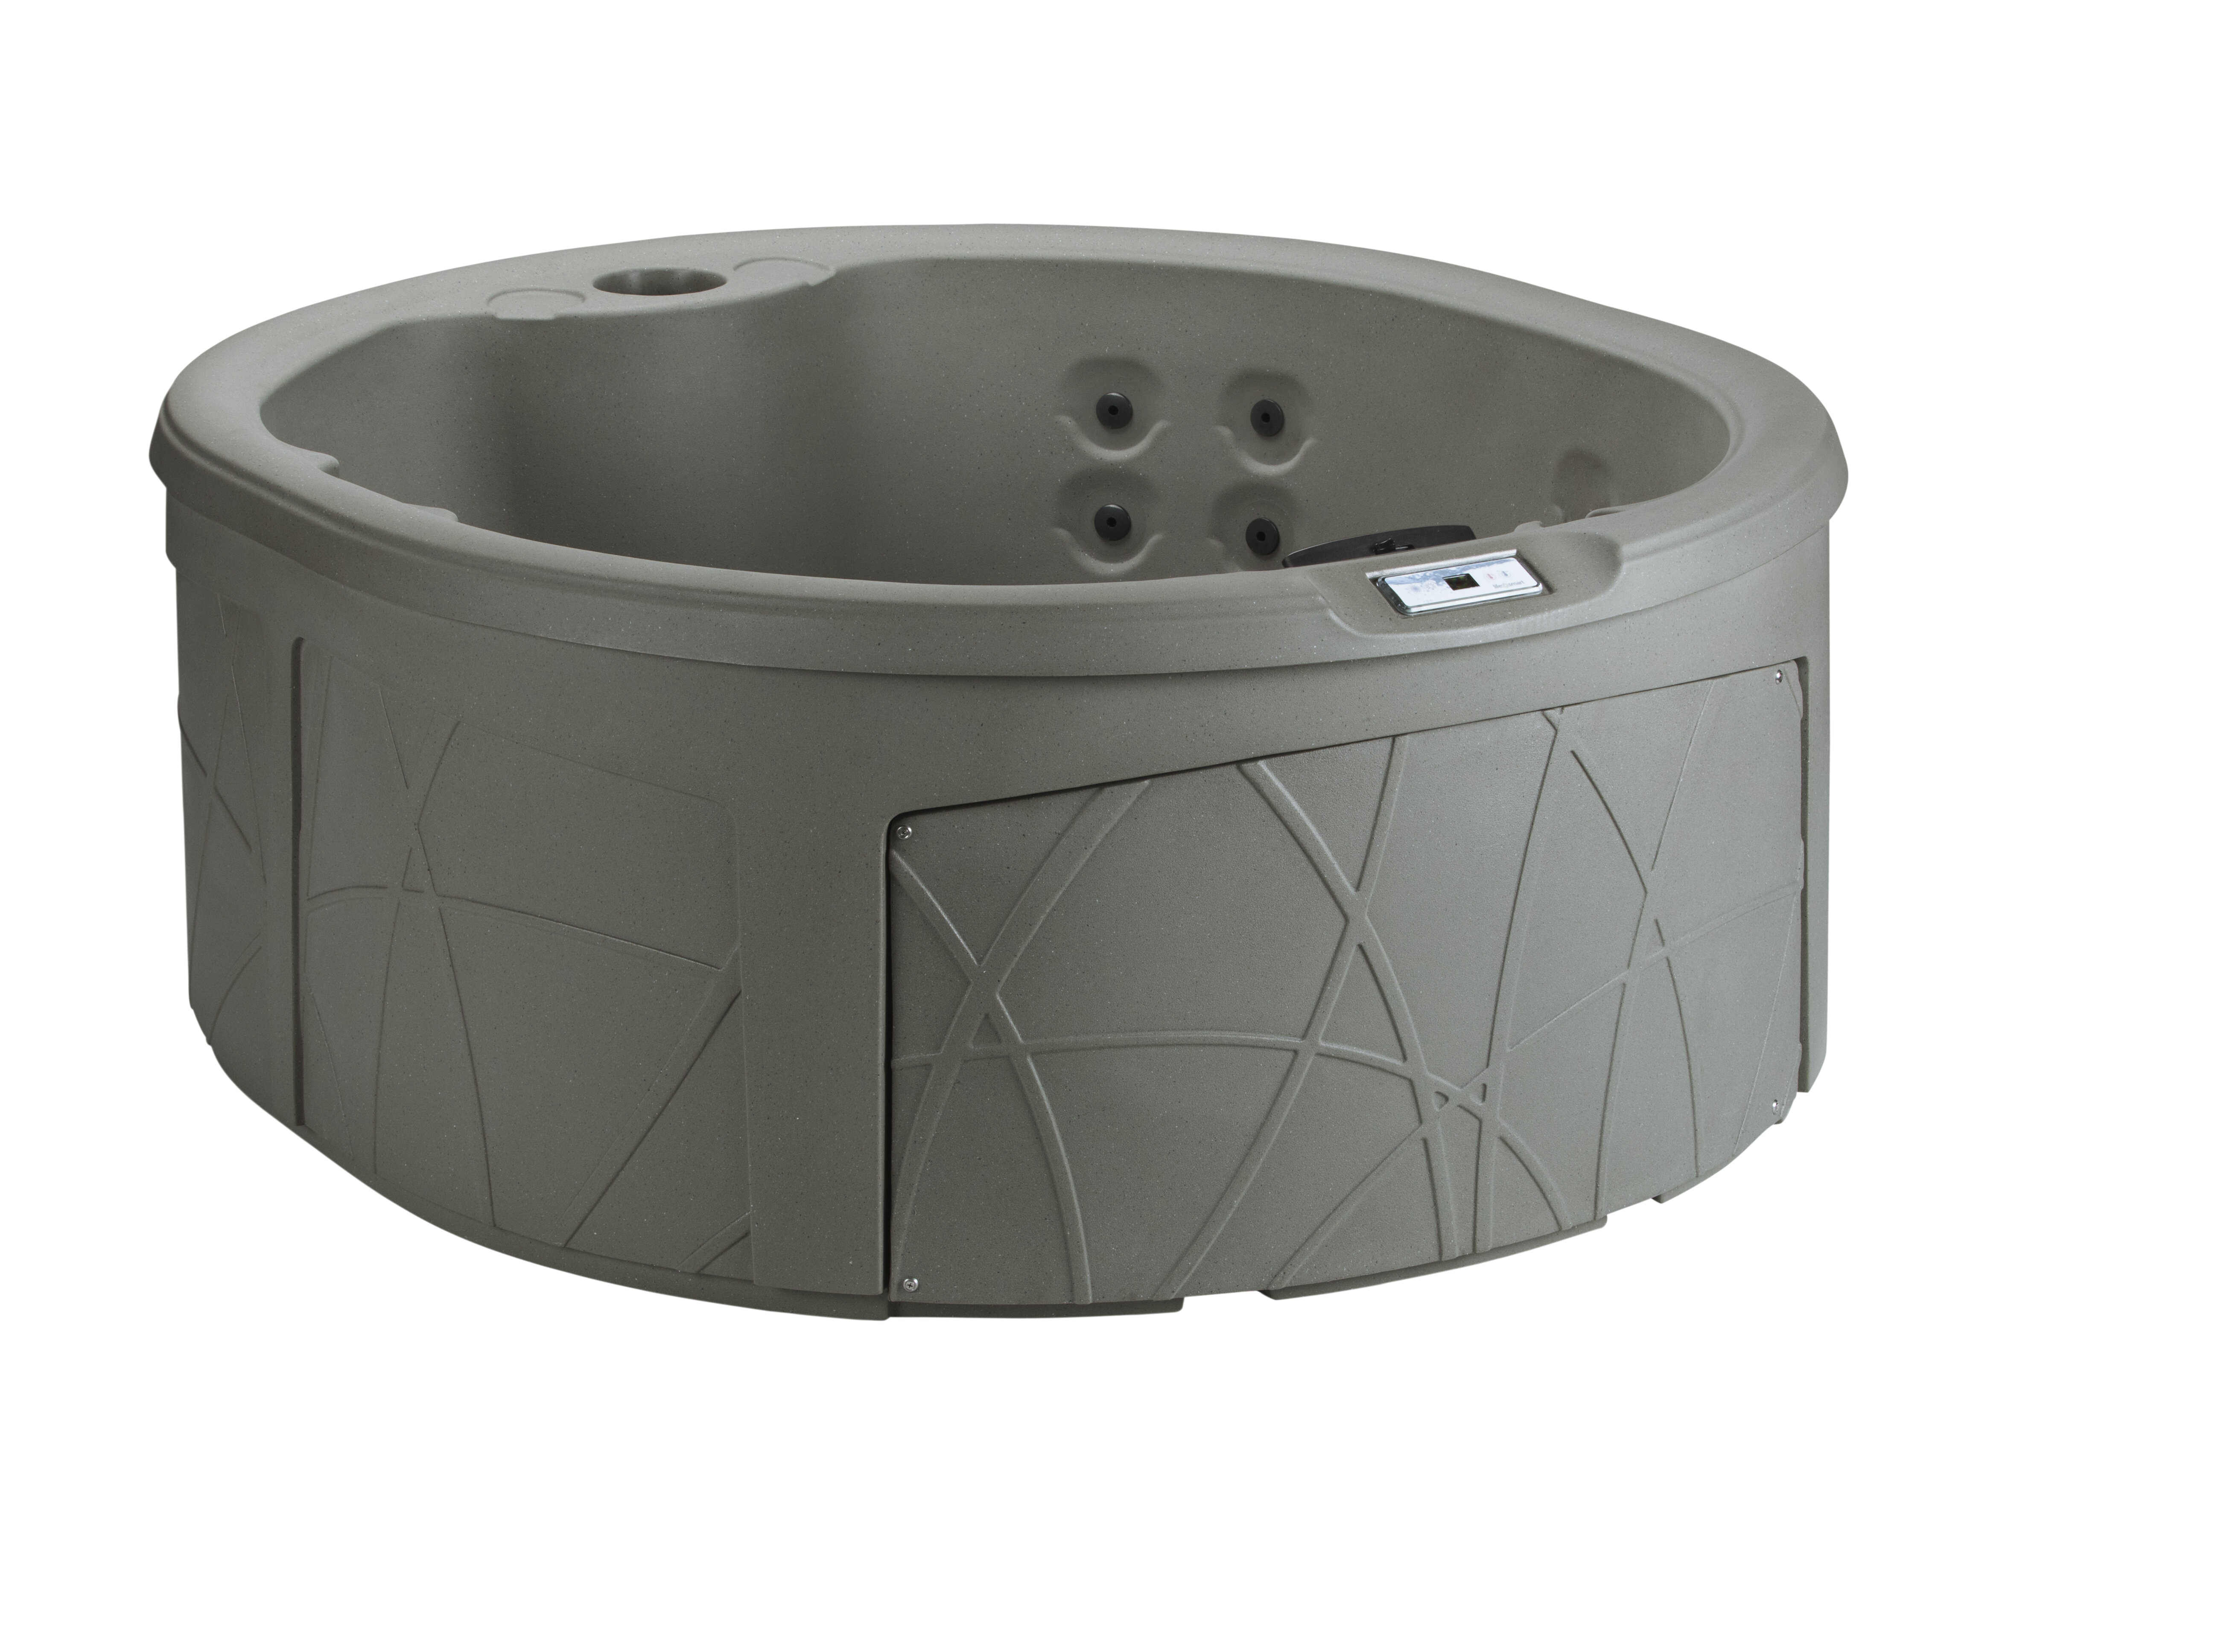 lifesmart affordable hot the money tub reviews top best for tubs